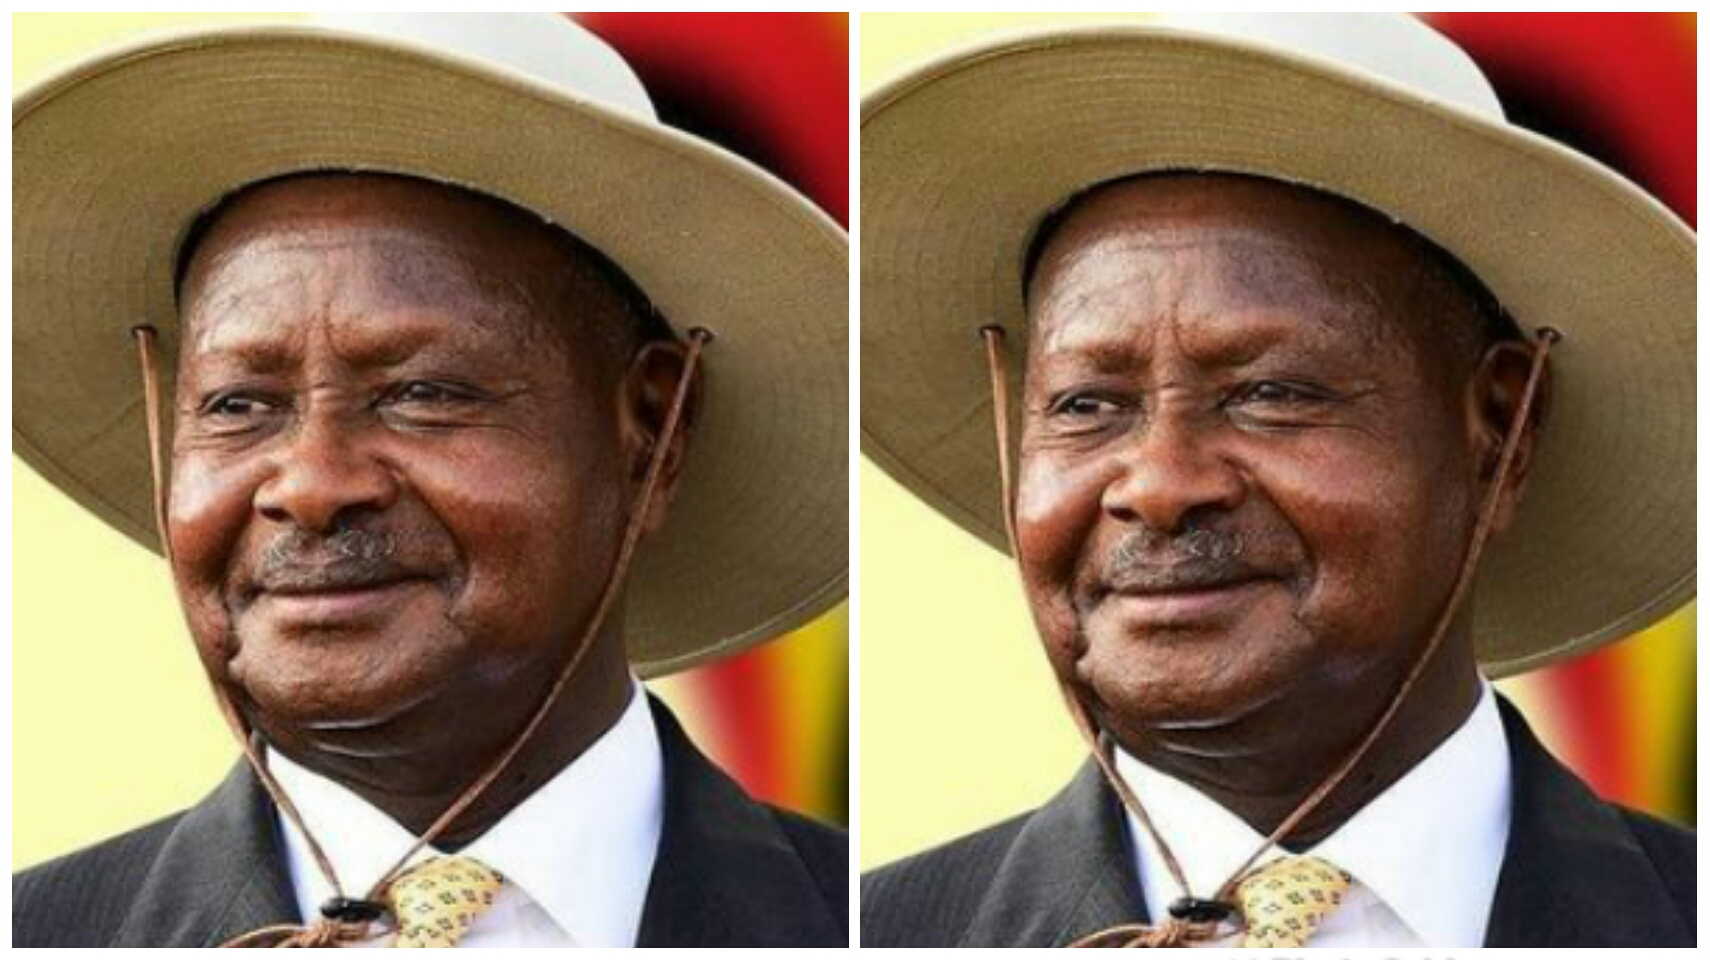 Uganda election After 34yrs in power, Pres. Museveni, 76, wins 6th term in office